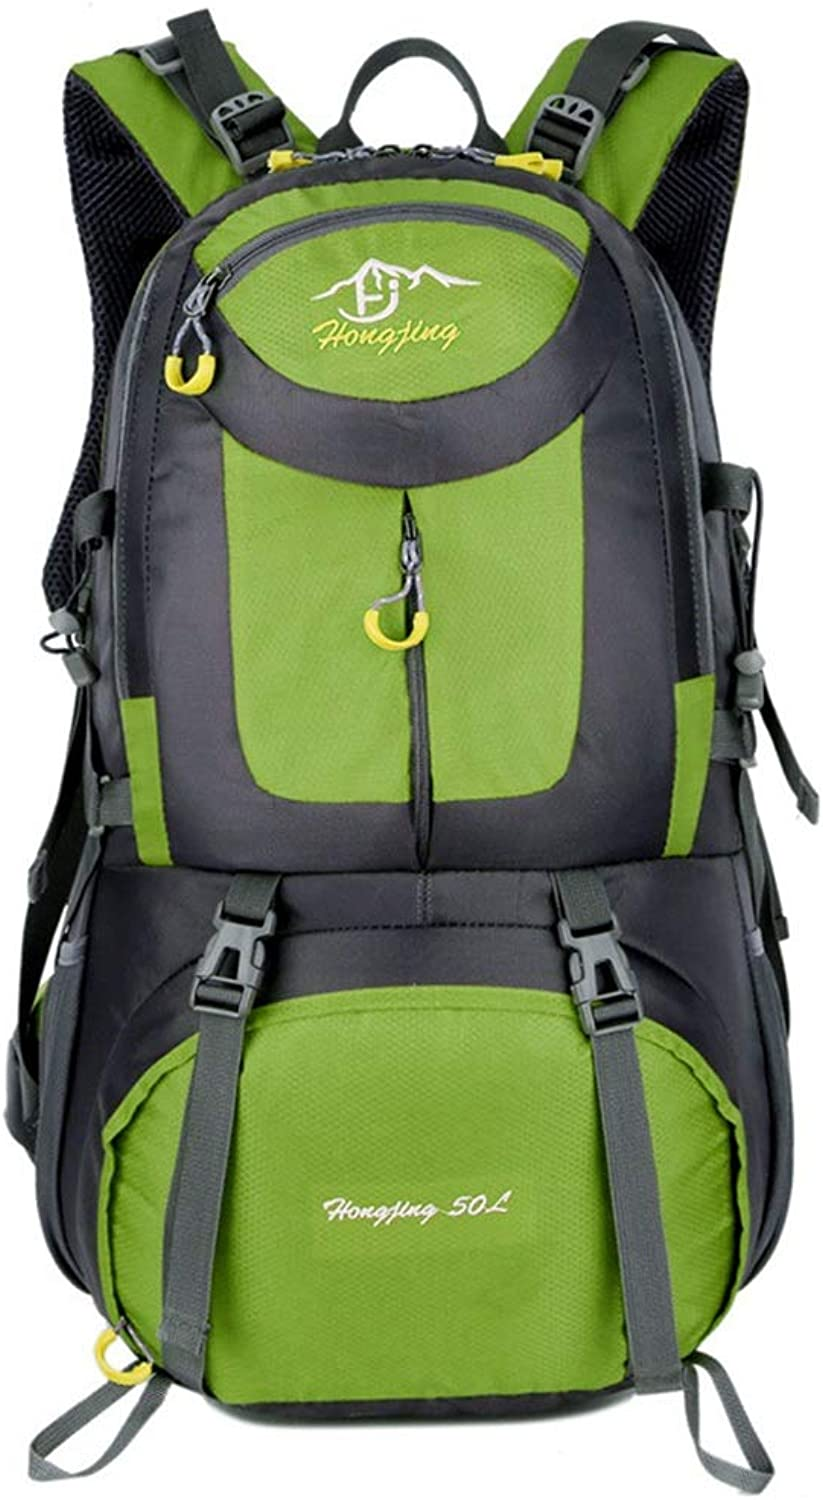 f2c345b7f Backpacks MultiFunctional Waterproof Hiking Backpack Lightweight 50L Travel  Mountaineering Camping Fishing Daypack (color Green,